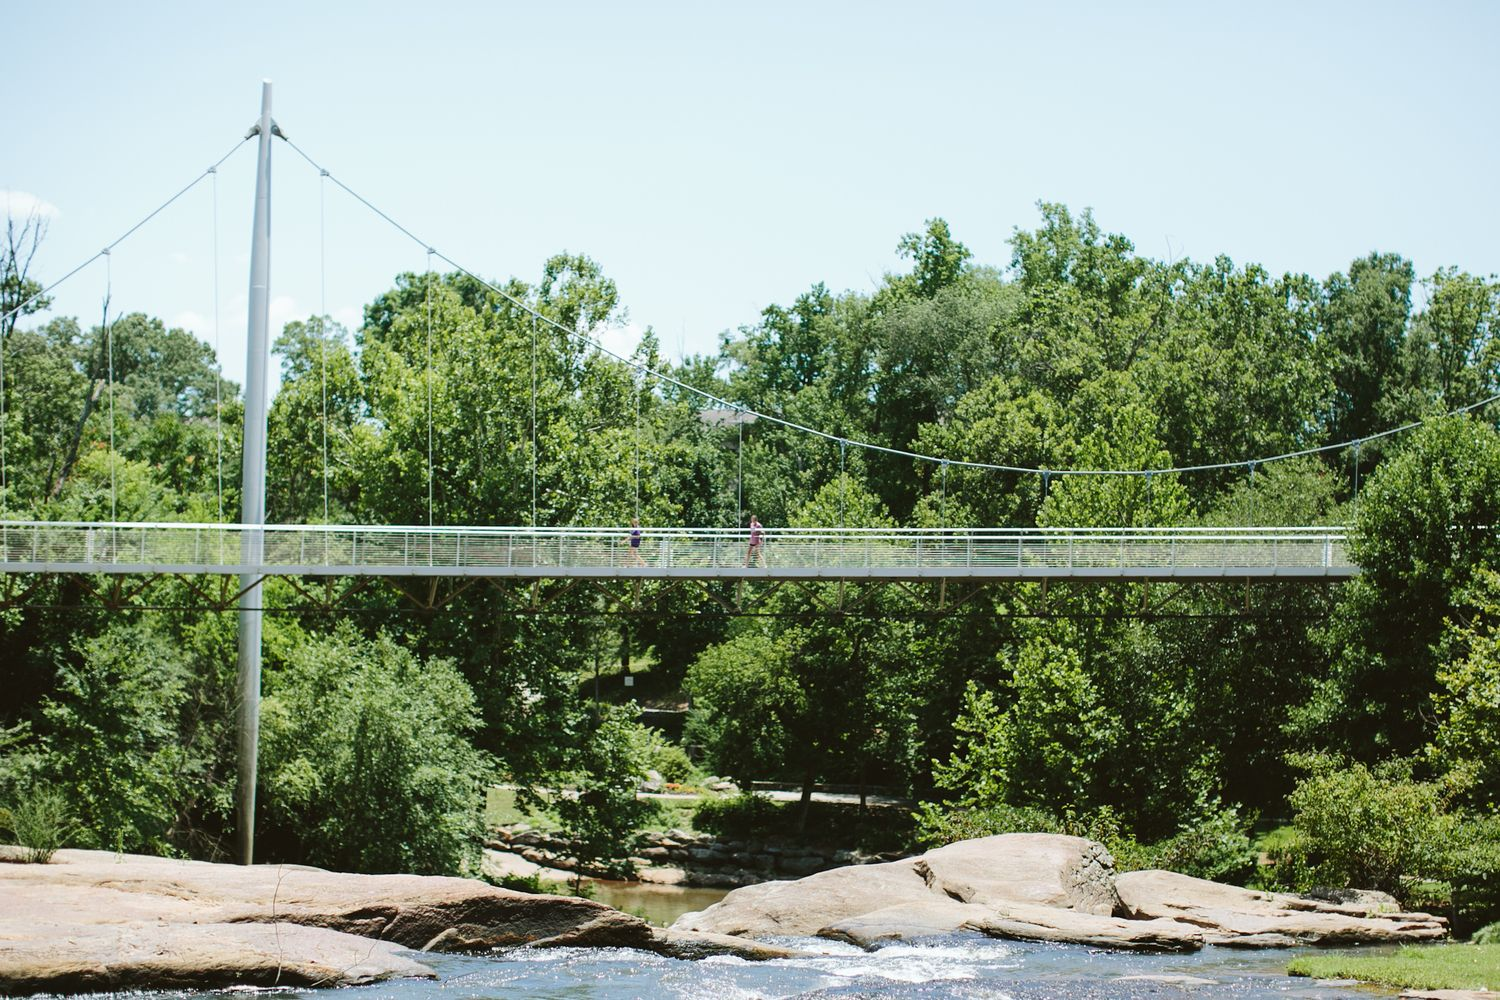 AshevilleFolk - Greenville, South Carolina City Guide: Falls Park. When visiting Greenville you must take a stroll through Falls Park and walk across the Liberty Bridge. Photo by Angela Cox.